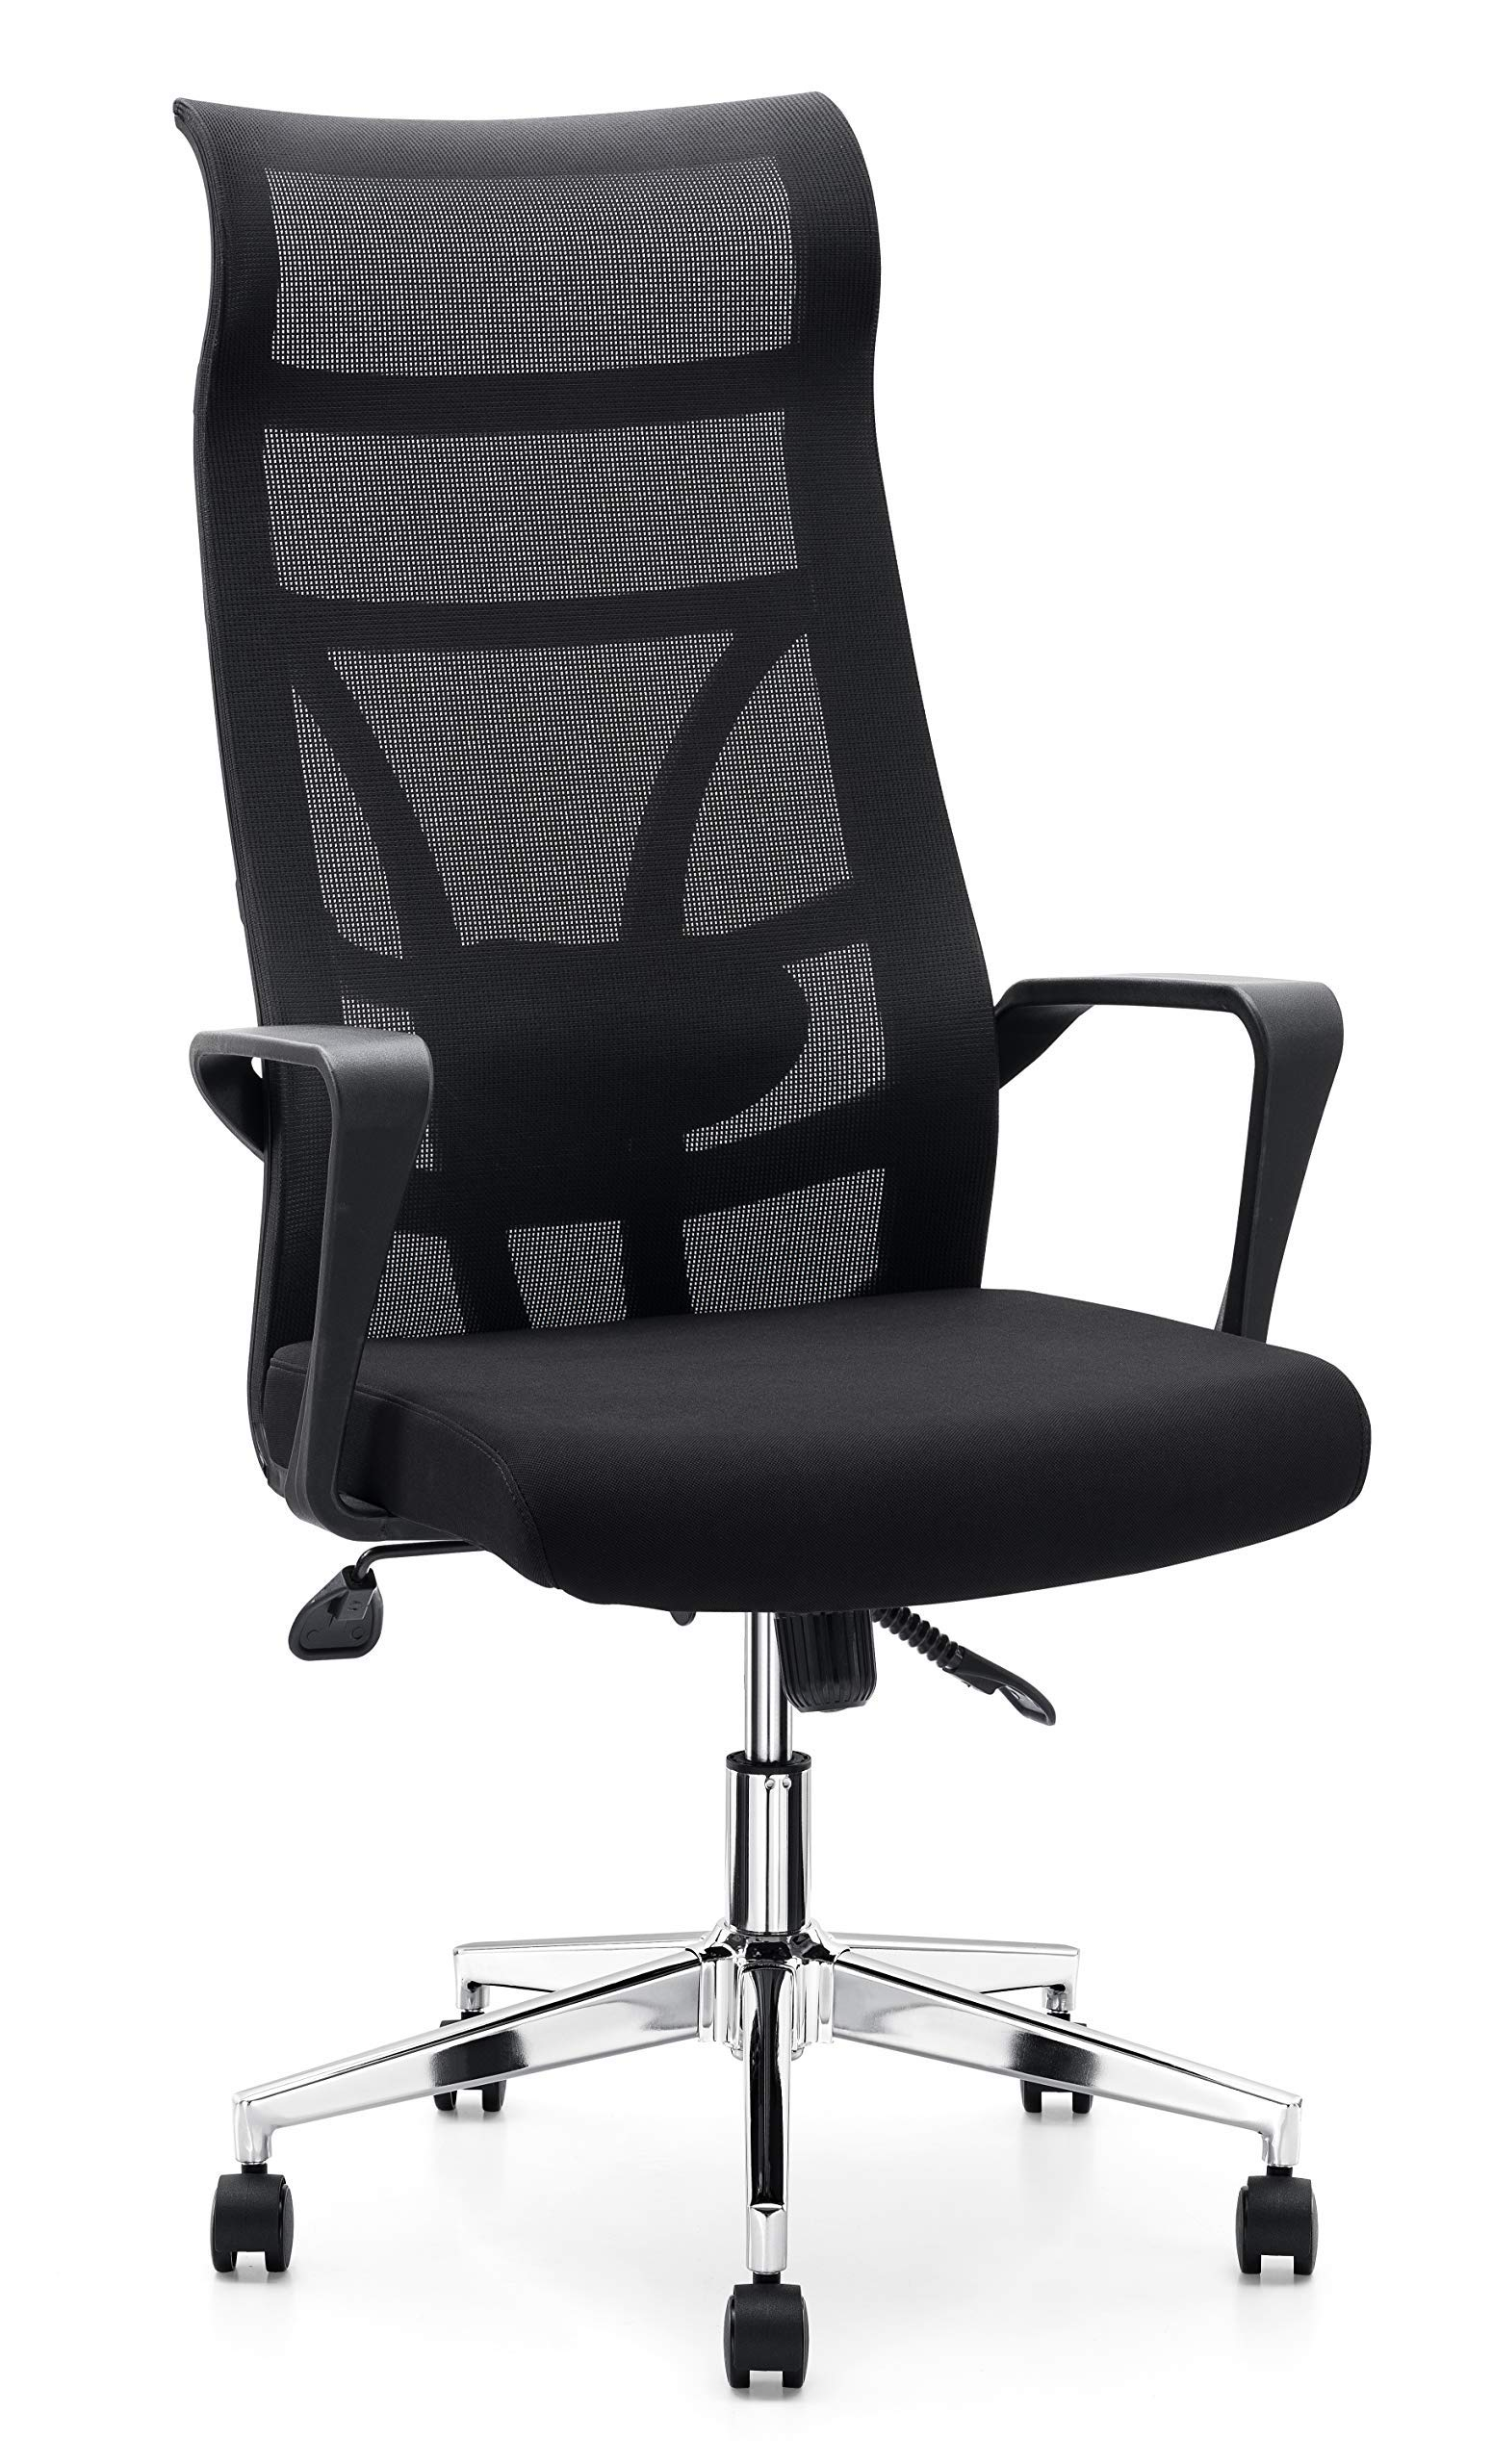 Allguest Executive Office High Back Elastic Mesh Chair - Black Premium Quality High-Back Office Chair - High-Density Foam Cover Chair (Renewed) by Allguest